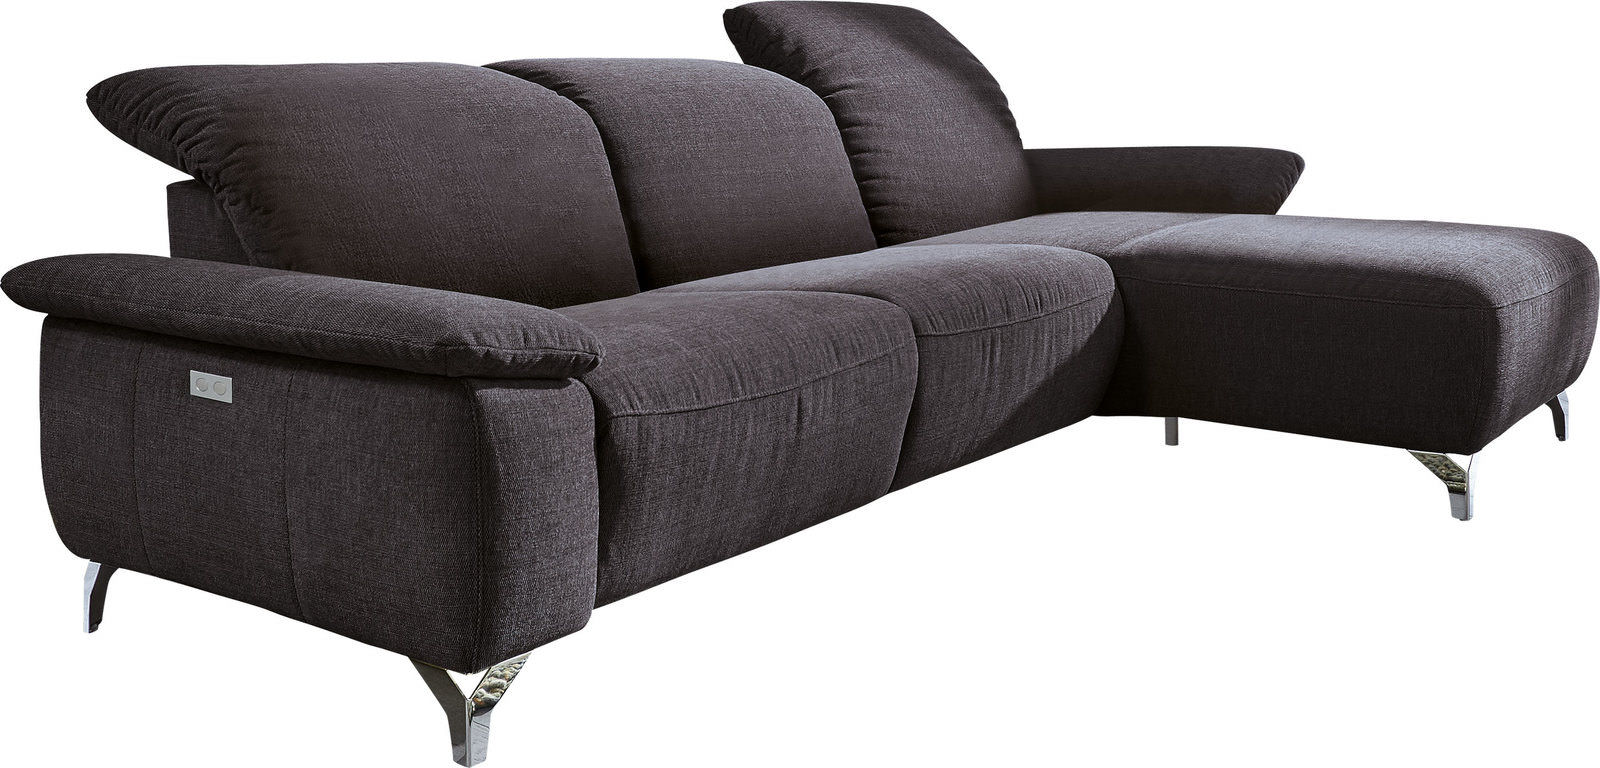 musterring sofas excellent musterring sofa leder mr musterring musterring sofa leder with. Black Bedroom Furniture Sets. Home Design Ideas